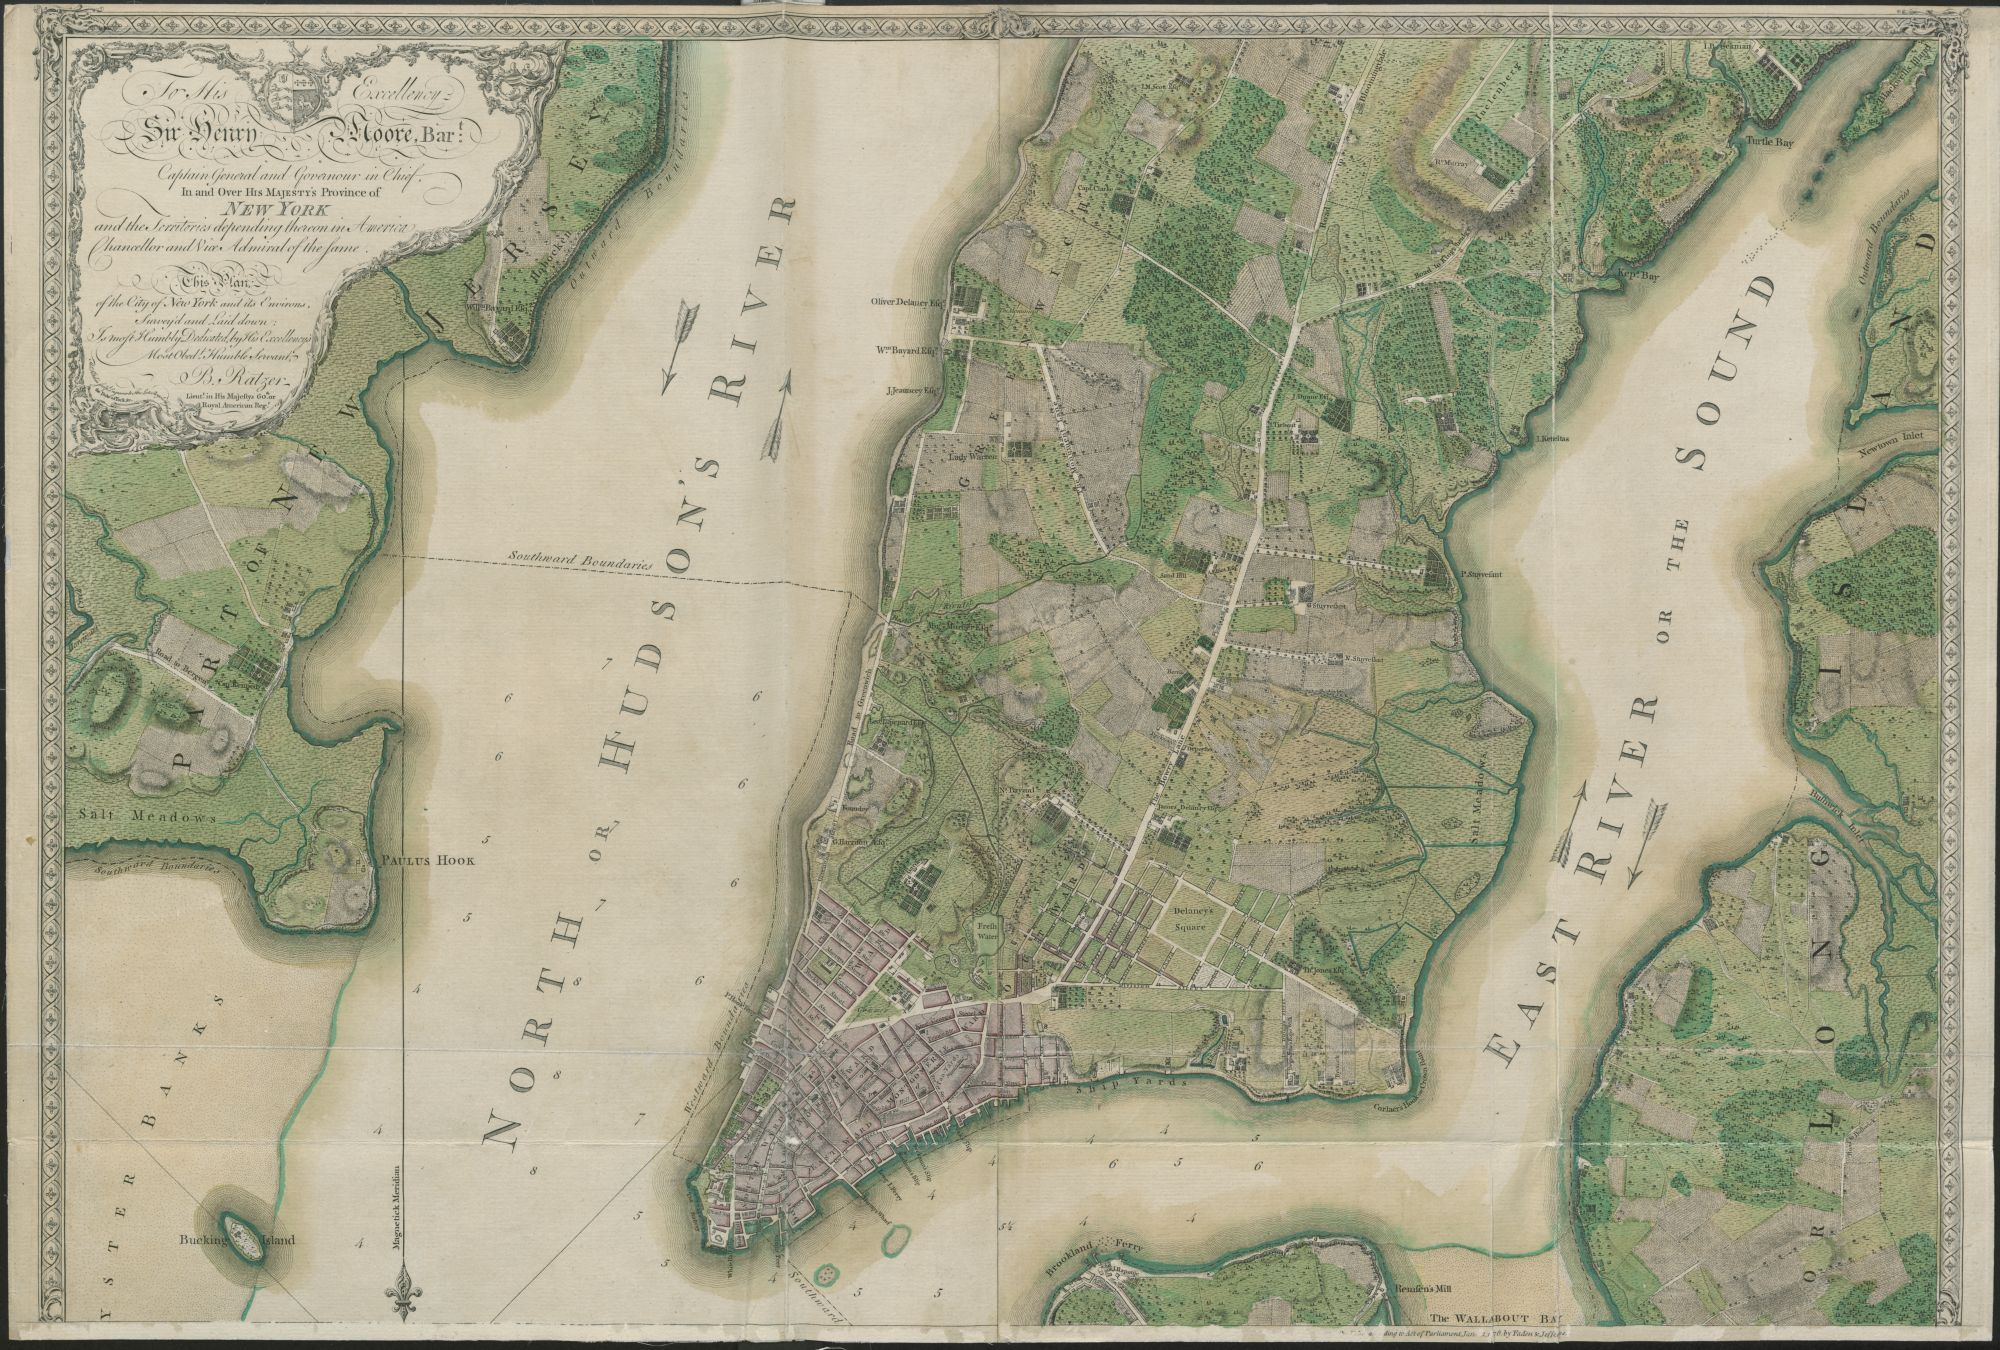 PLAN of the CITY of NEW YORK, in North America : Surveyed in the Years 1766 & 1767 / B. Ratzer, Lieut.t in His Majestys 60th or Royal American Reg.t. Bernard Ratzer, cartographer., London : Publish'd according to Act of Parliament, Jan.y 12. 1776 by Jefferys & Faden, Corner of St. Martins Lane, Charing Cross, Jan.y 12. 1776., Maps 1.Tab.44.